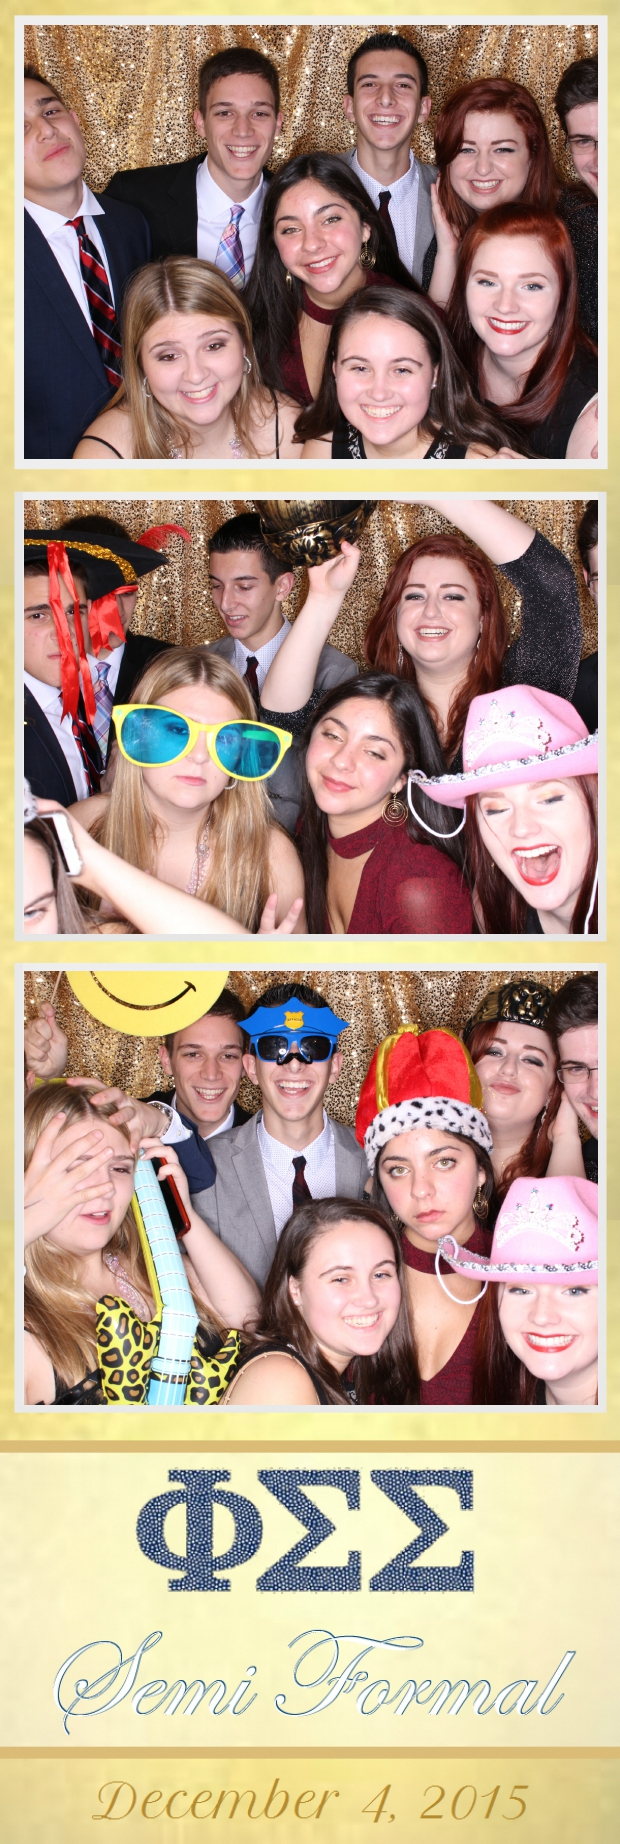 Guest House Events Photo Booth Phi Sigma Sigma Semi Formal (35).jpg